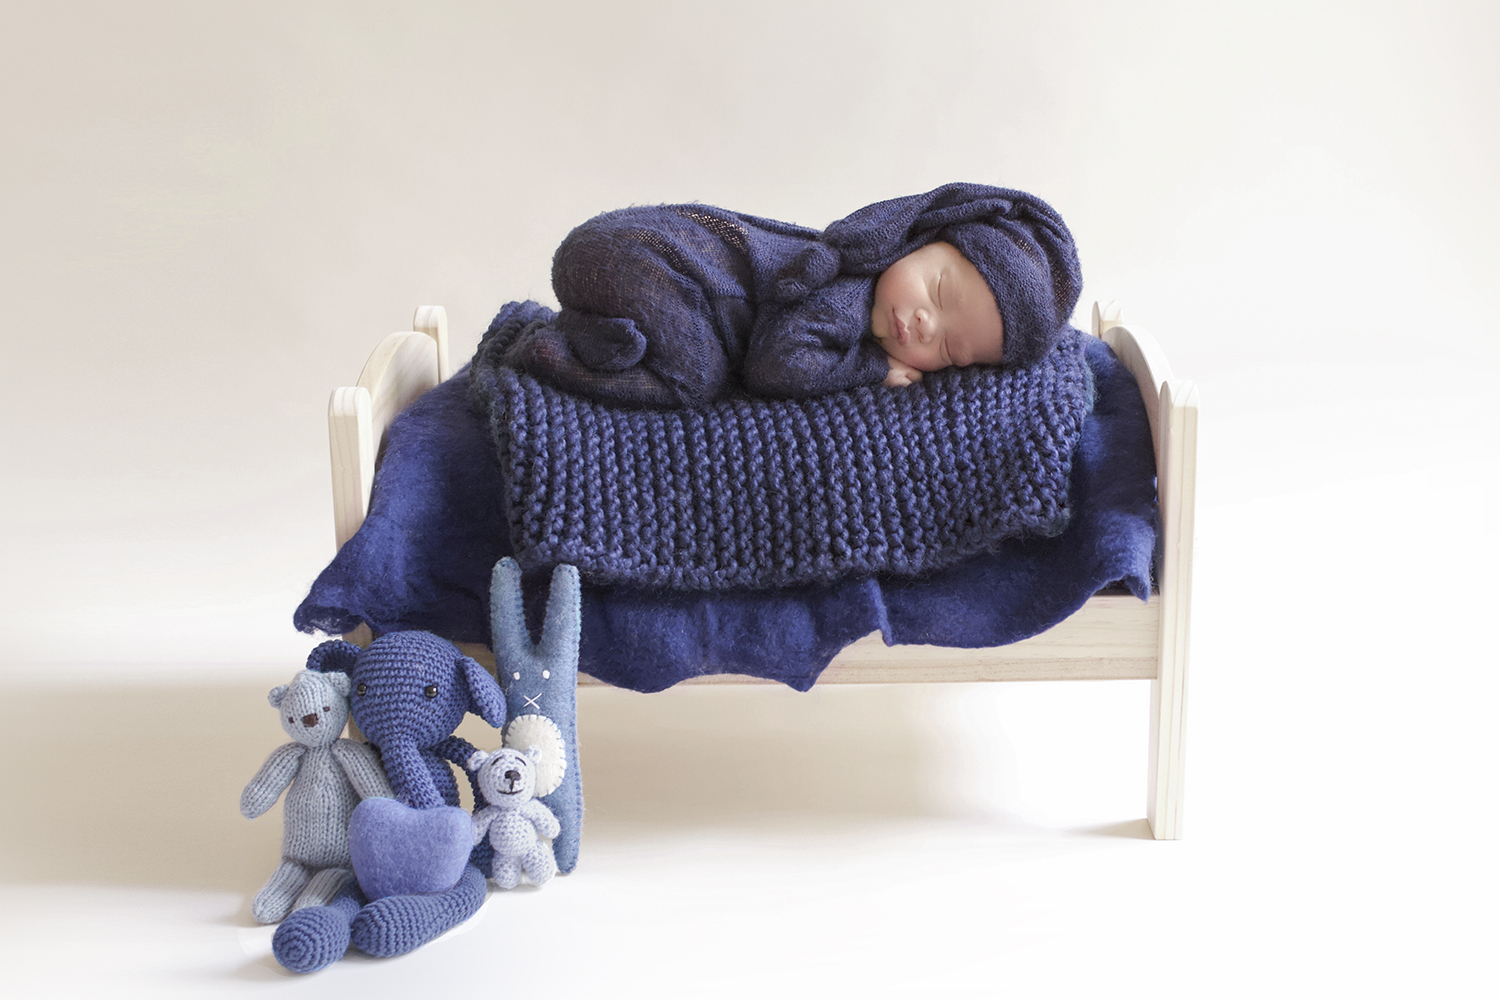 Newborn baby boy sleeping on wooden bed wearing navy knit romper and bonnet with blue blanket and knit layer and soft toys